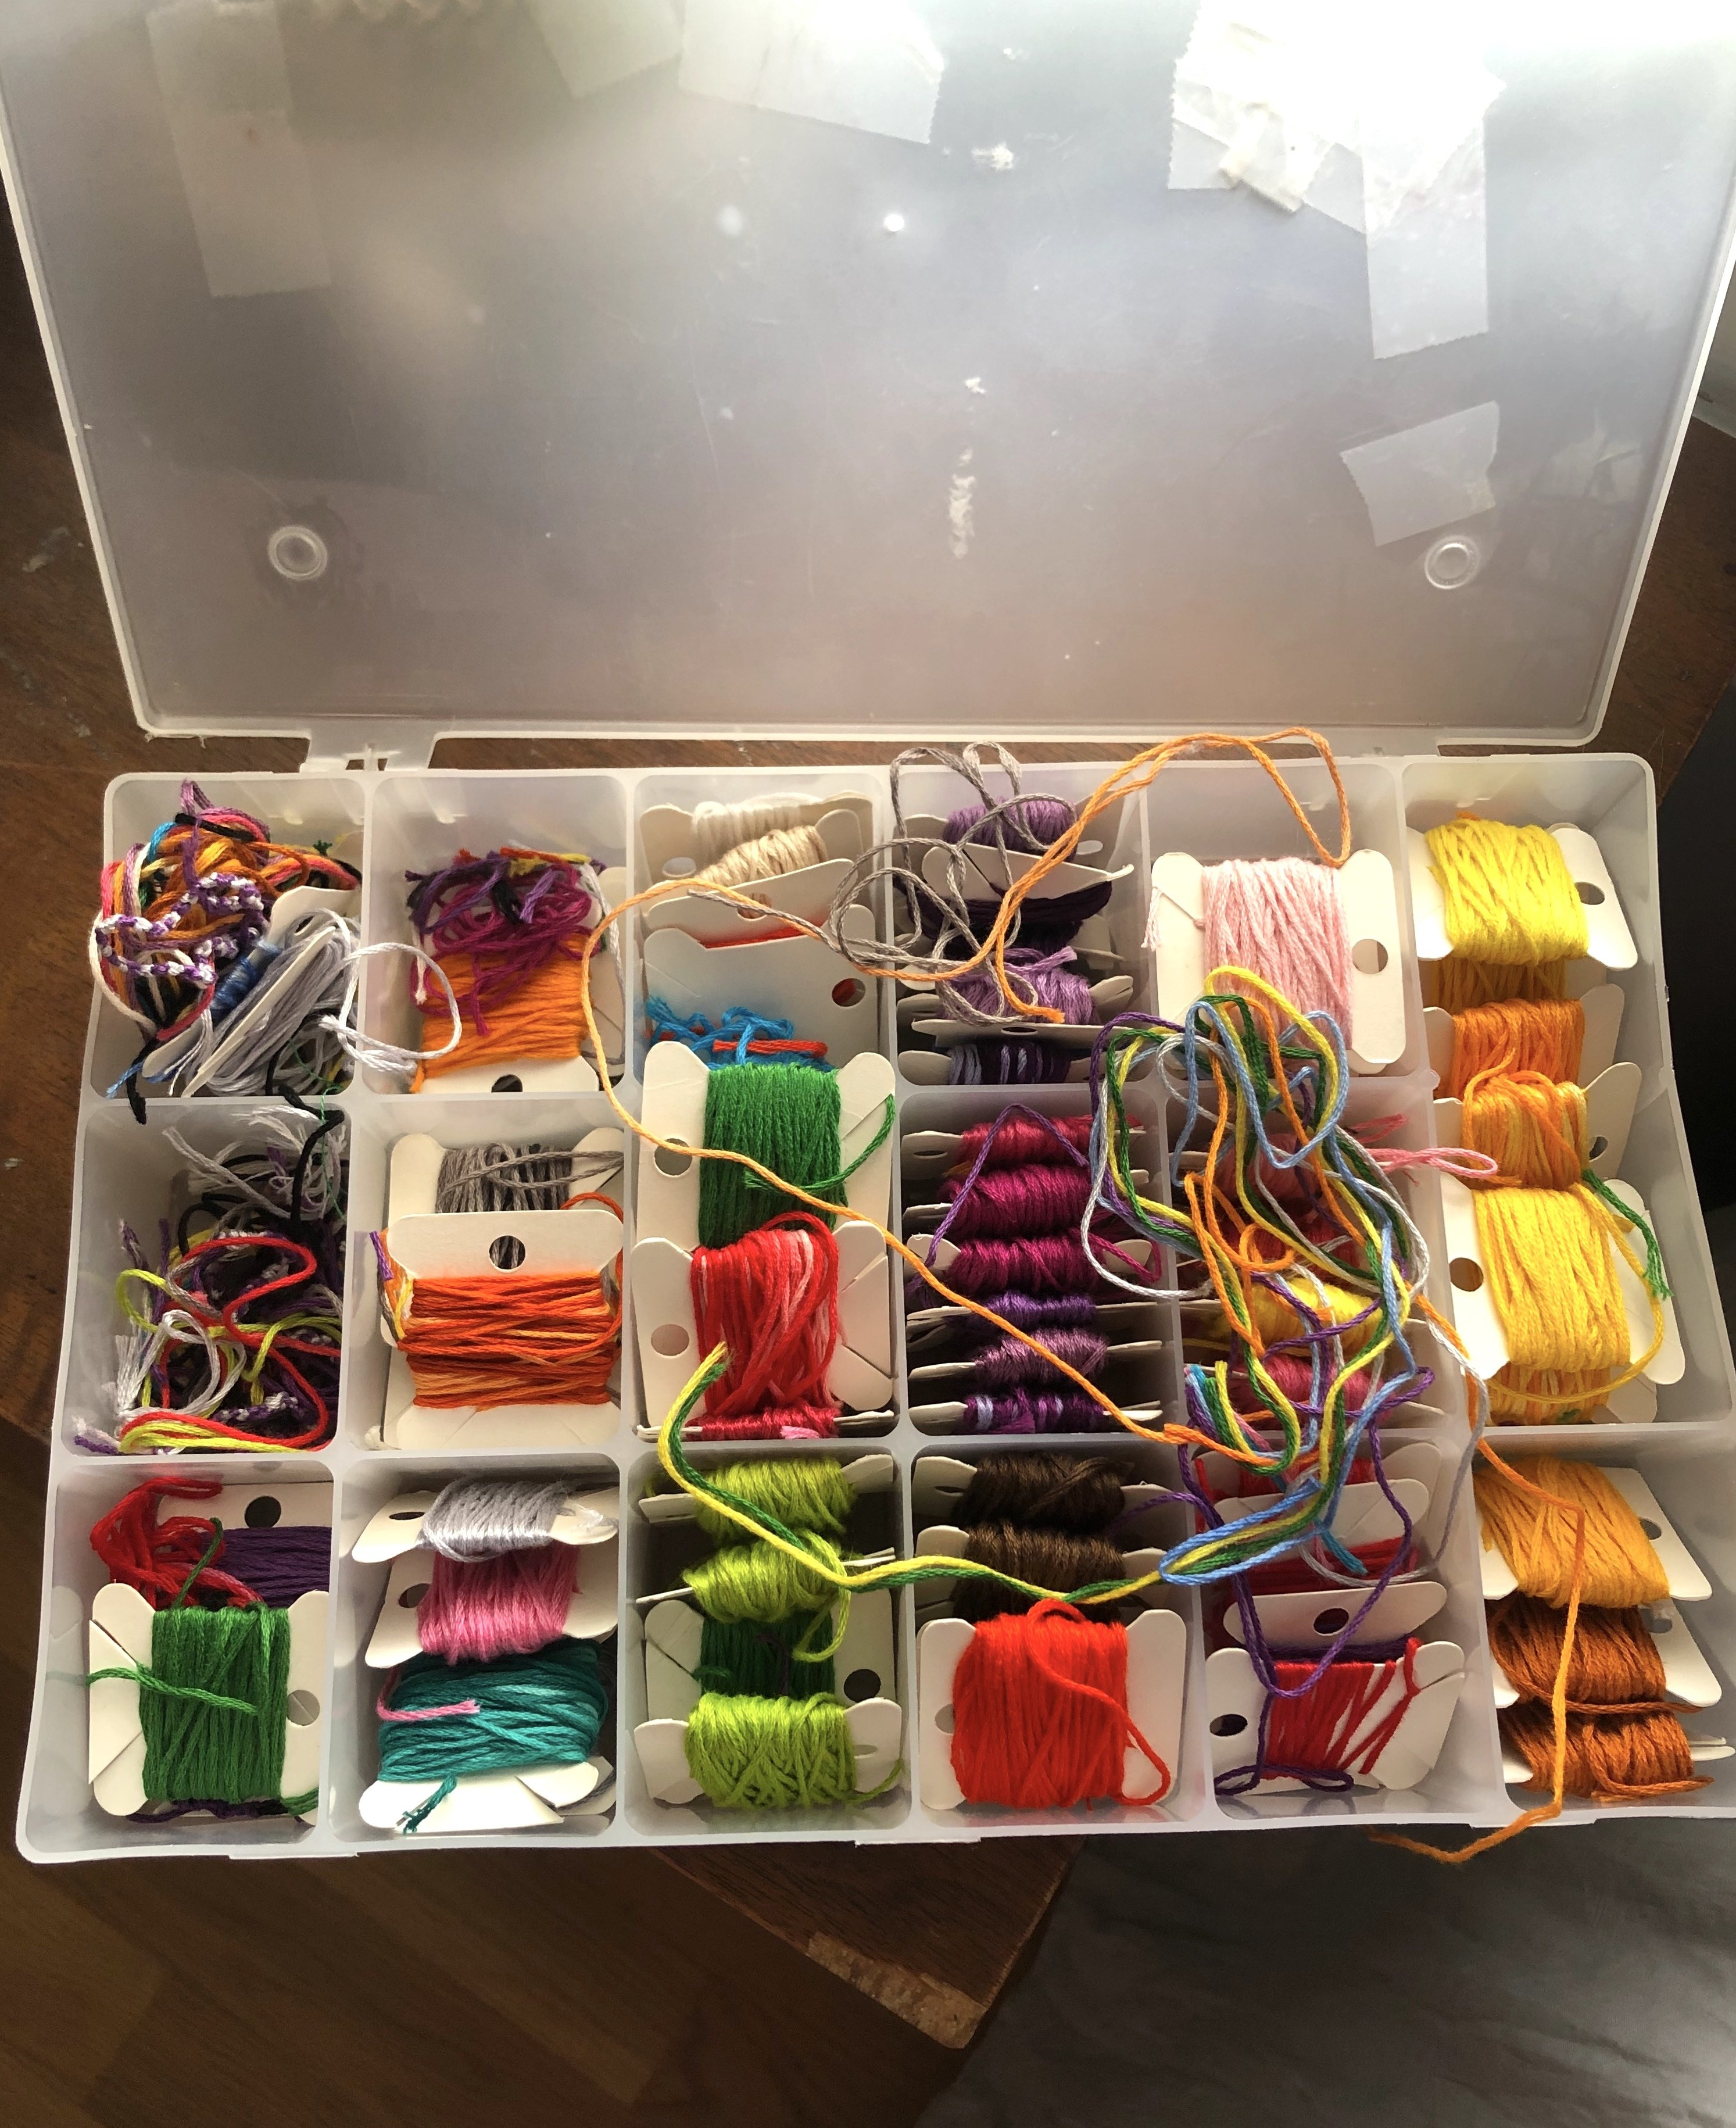 Rolls of colorful string wrapped around paper squares in a plastic box